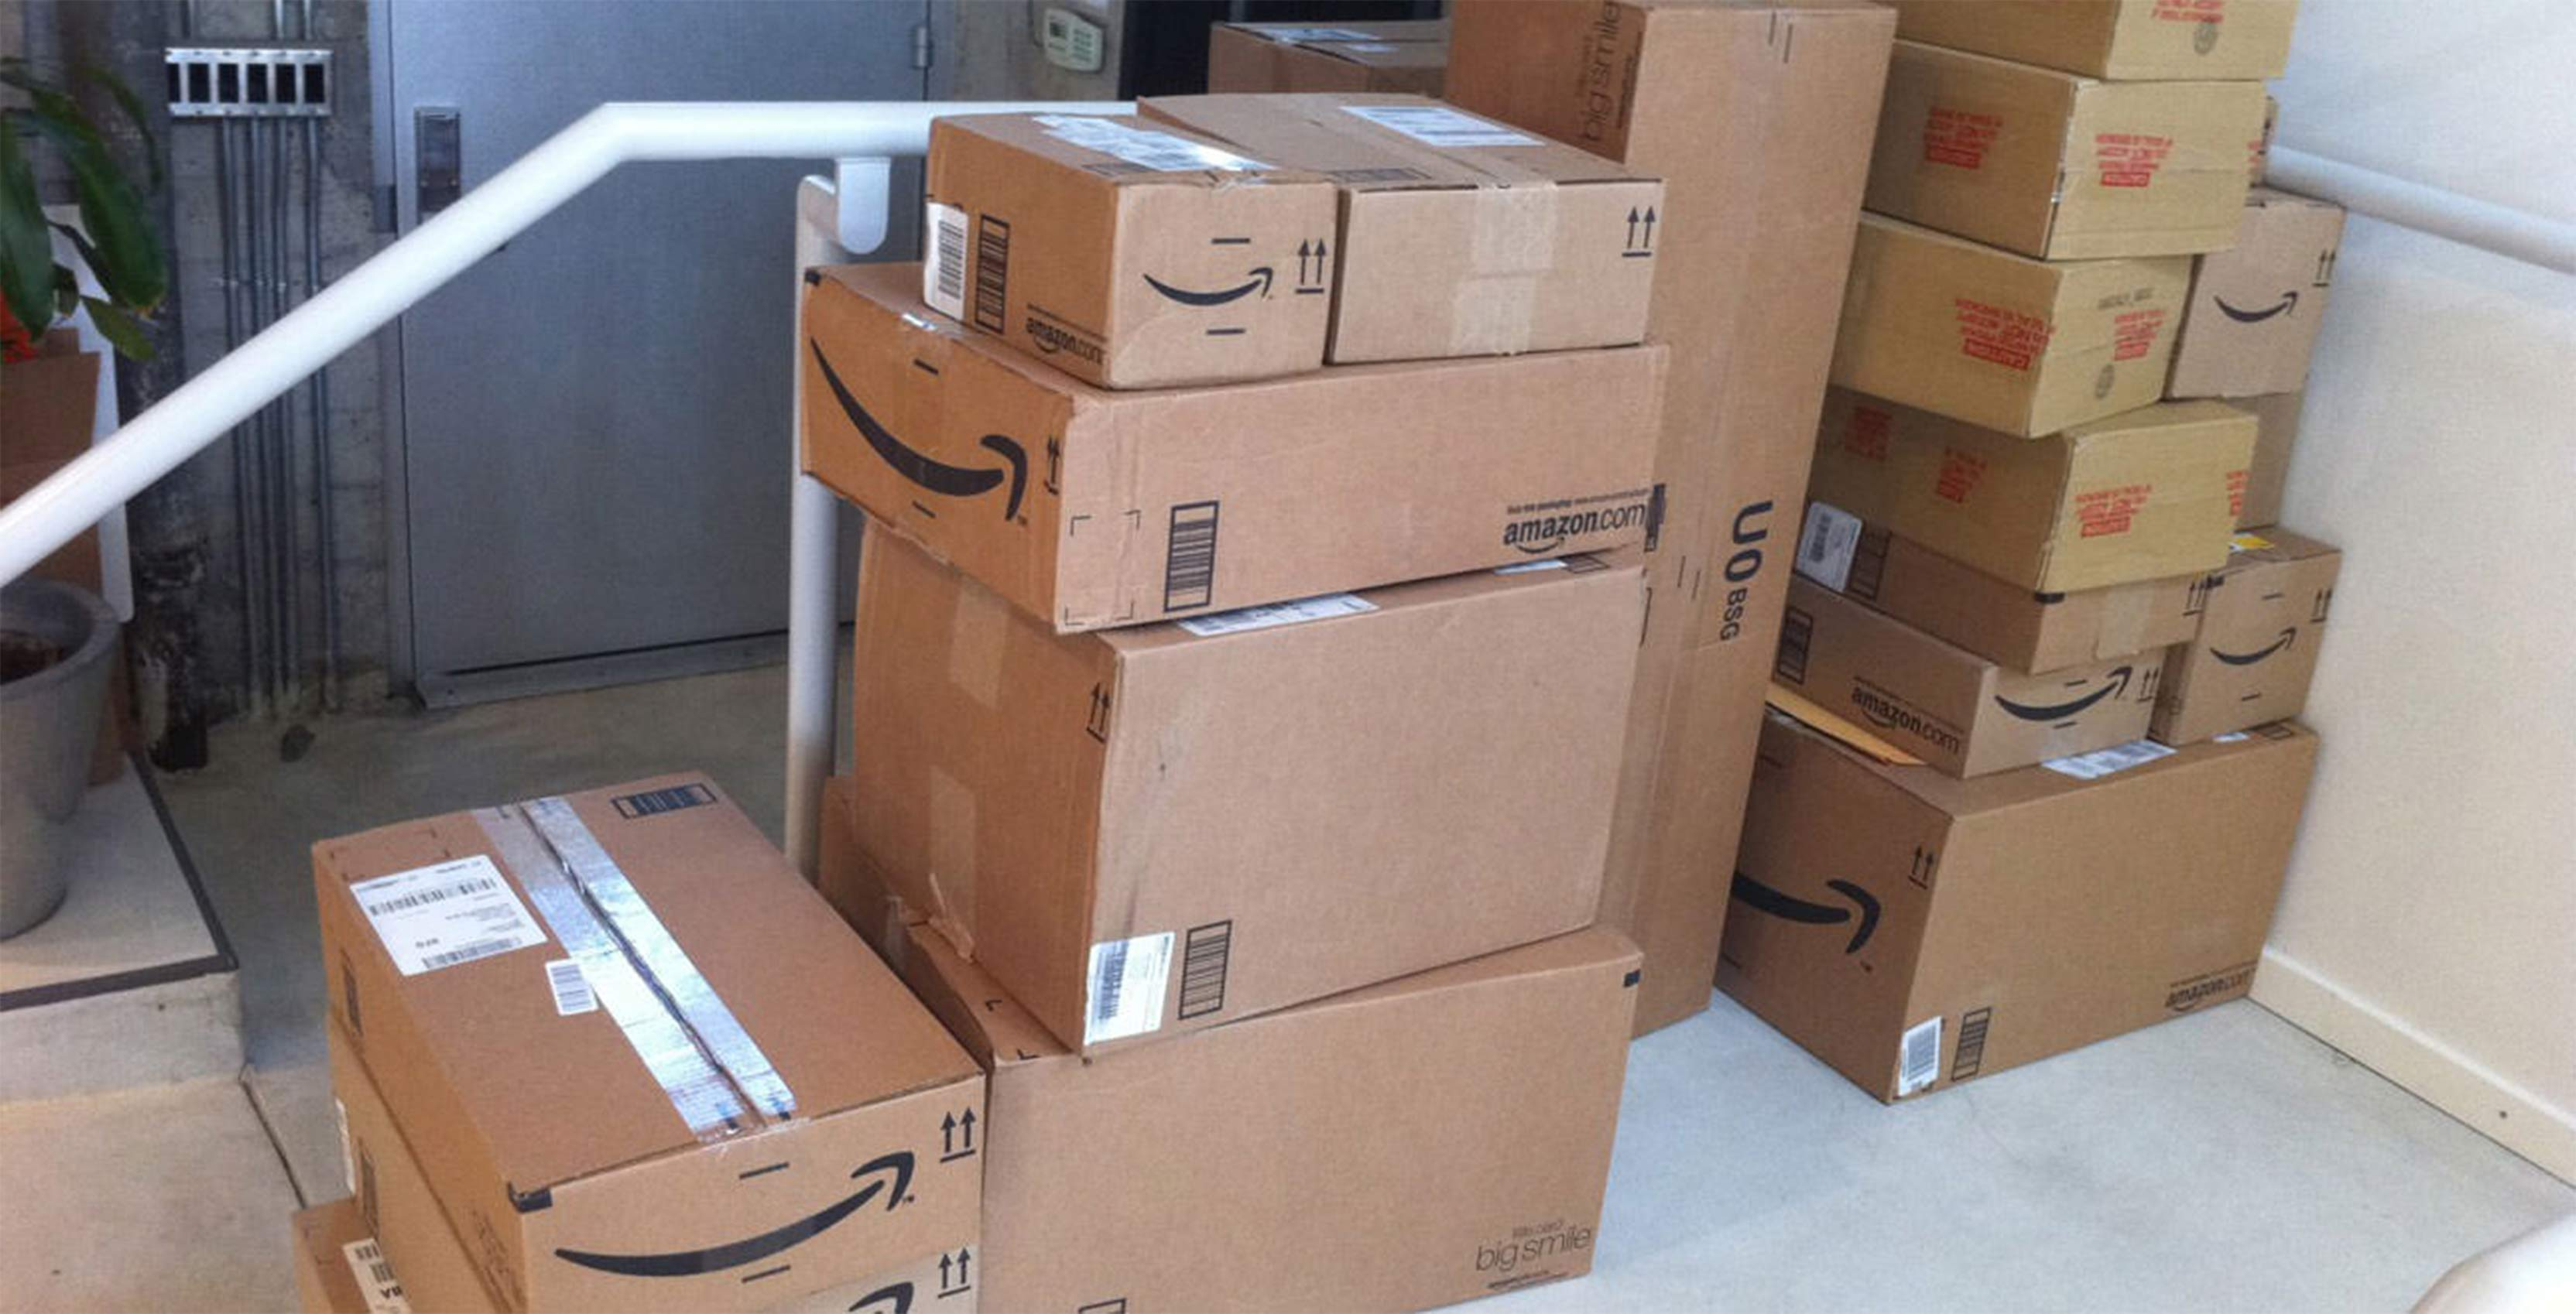 Amazon shipped a bonkers number of items to Prime customers in 2017